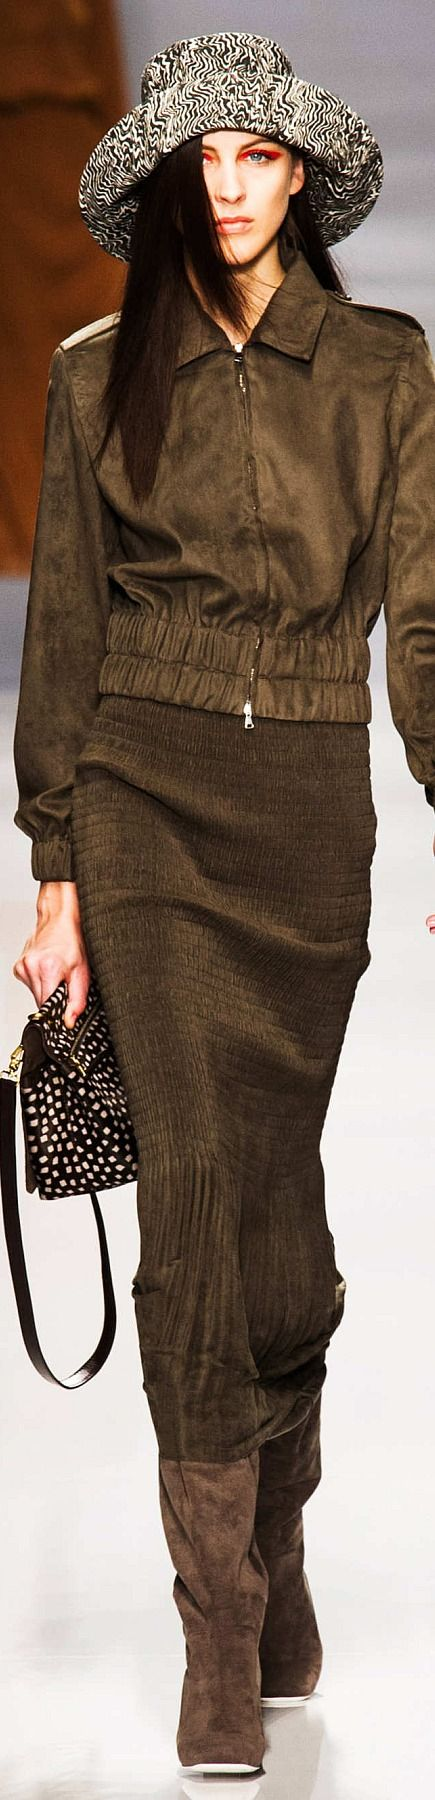 Max Mara Collection Spring 2015 | The House of Beccaria~